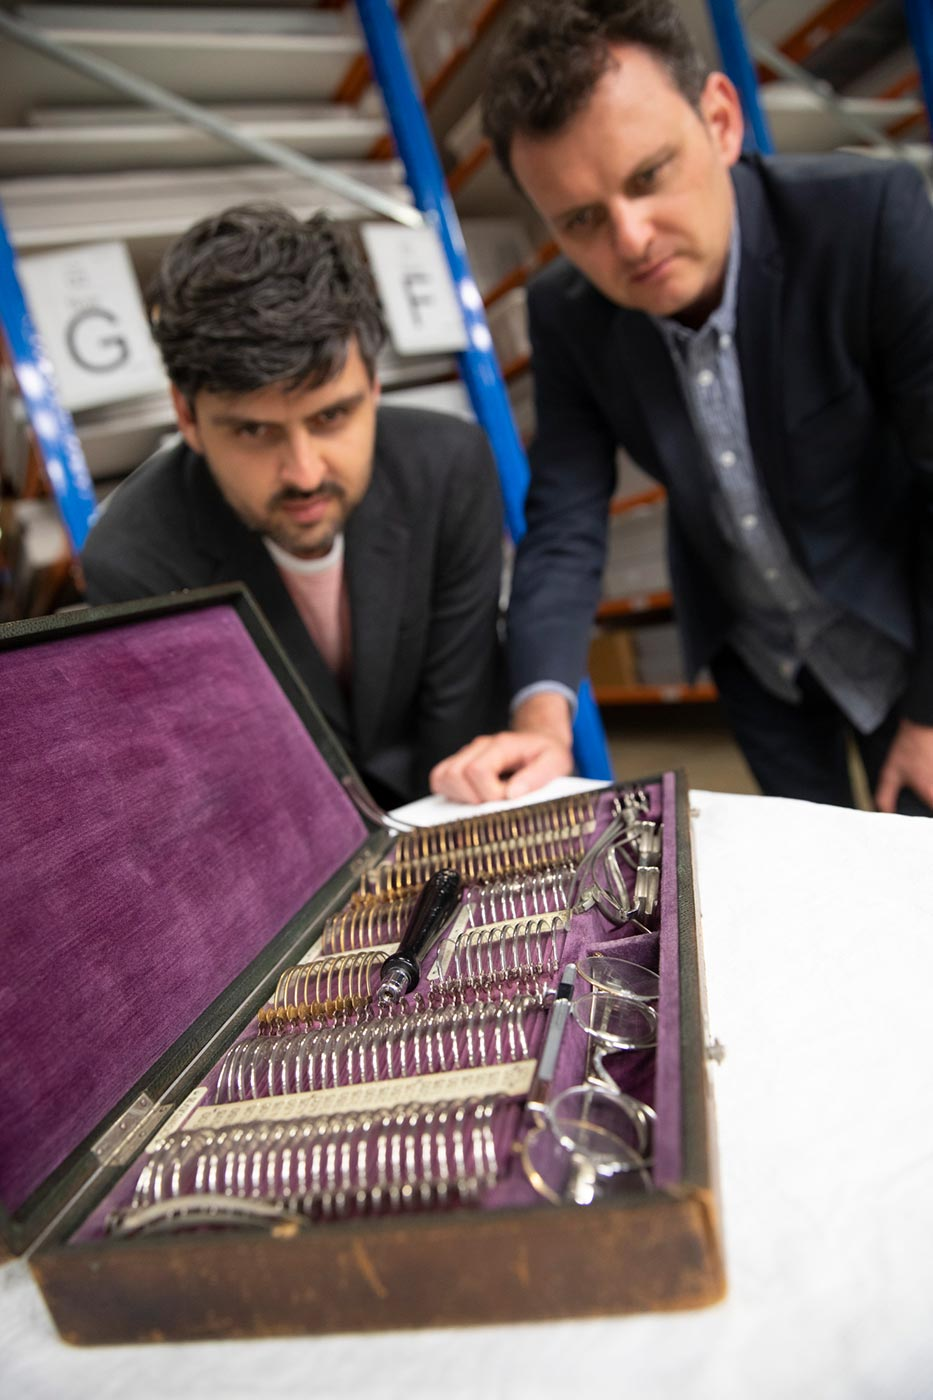 Slava and Leonard Grigoryan inspect a velvet-lined wooden case containing various optical tools. - click to view larger image